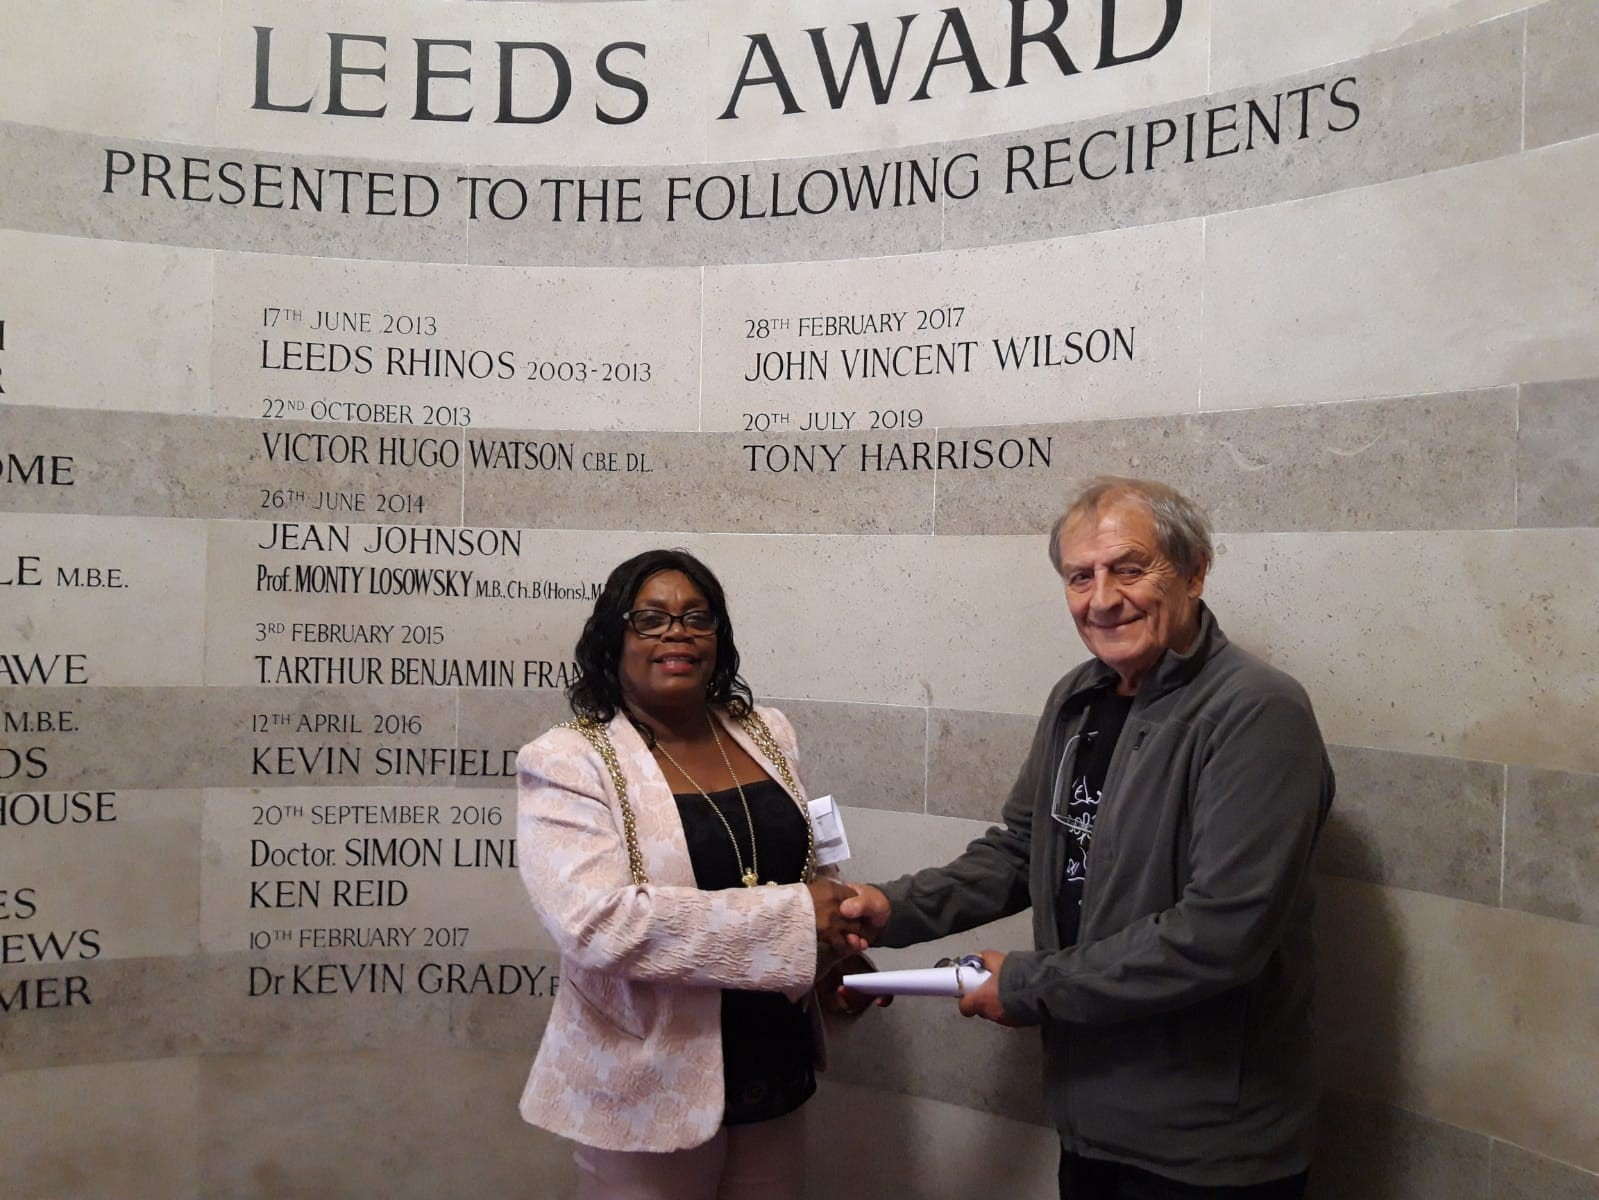 Tony.Harrison - Leeds Award